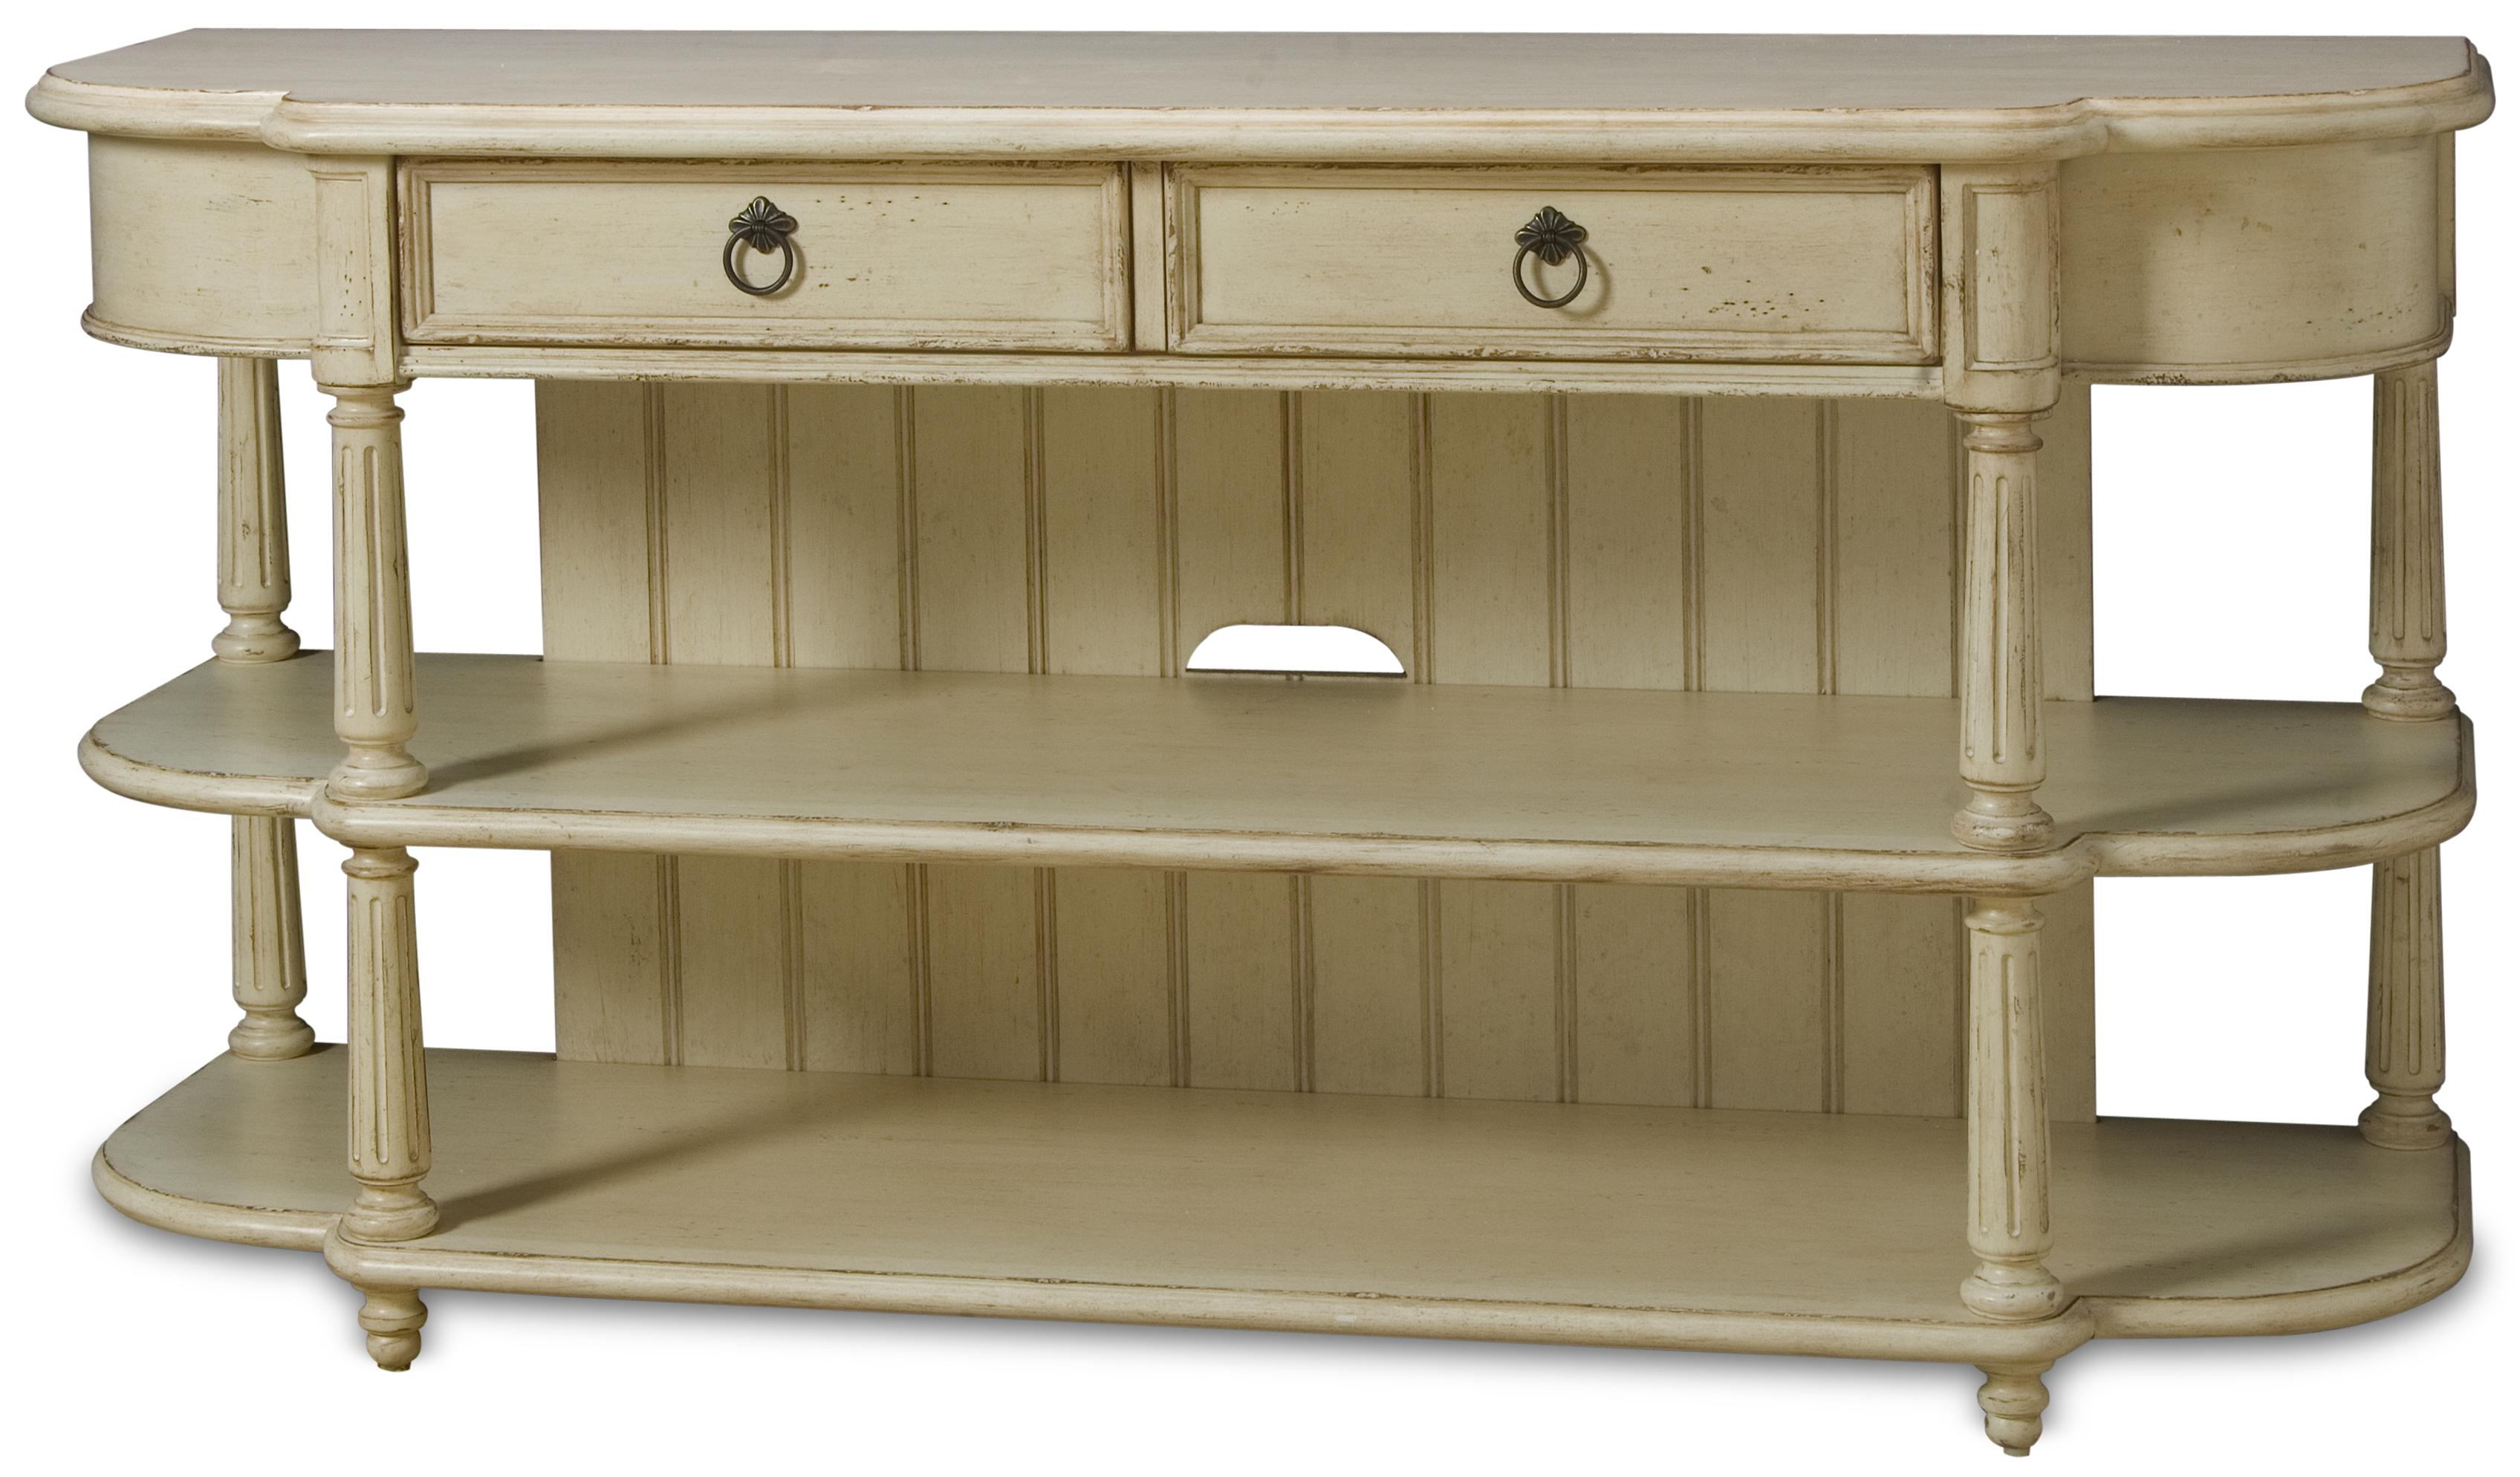 console baskets shelves drawer table b wolf and by furniture products with drew american sofa drawers